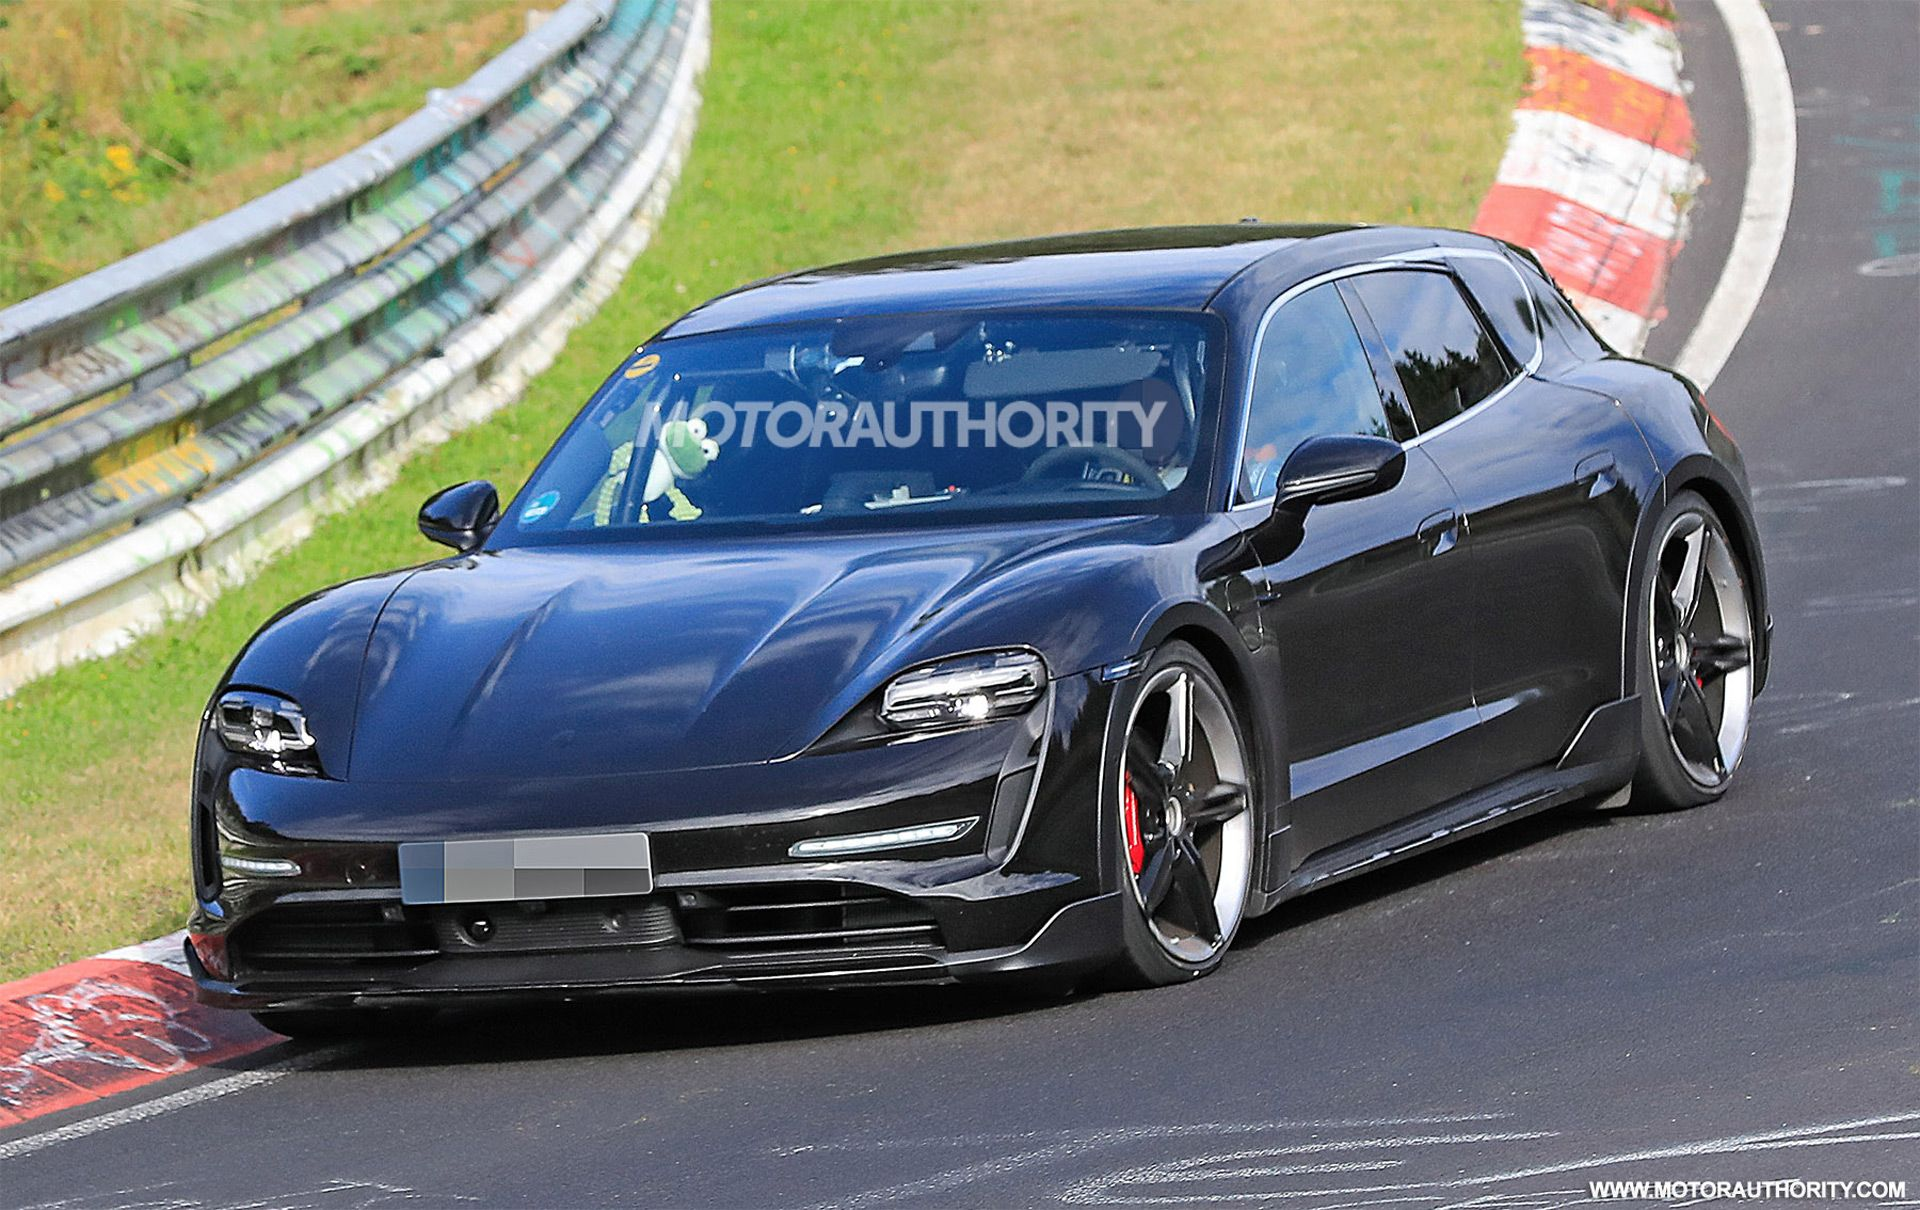 The Porsche Taycan Cross Turismo The Wagon Version Of The Taycan Electric Sport Sedan Has Been Spotted Porsche Taycan Porsche Panamera Sport Turismo